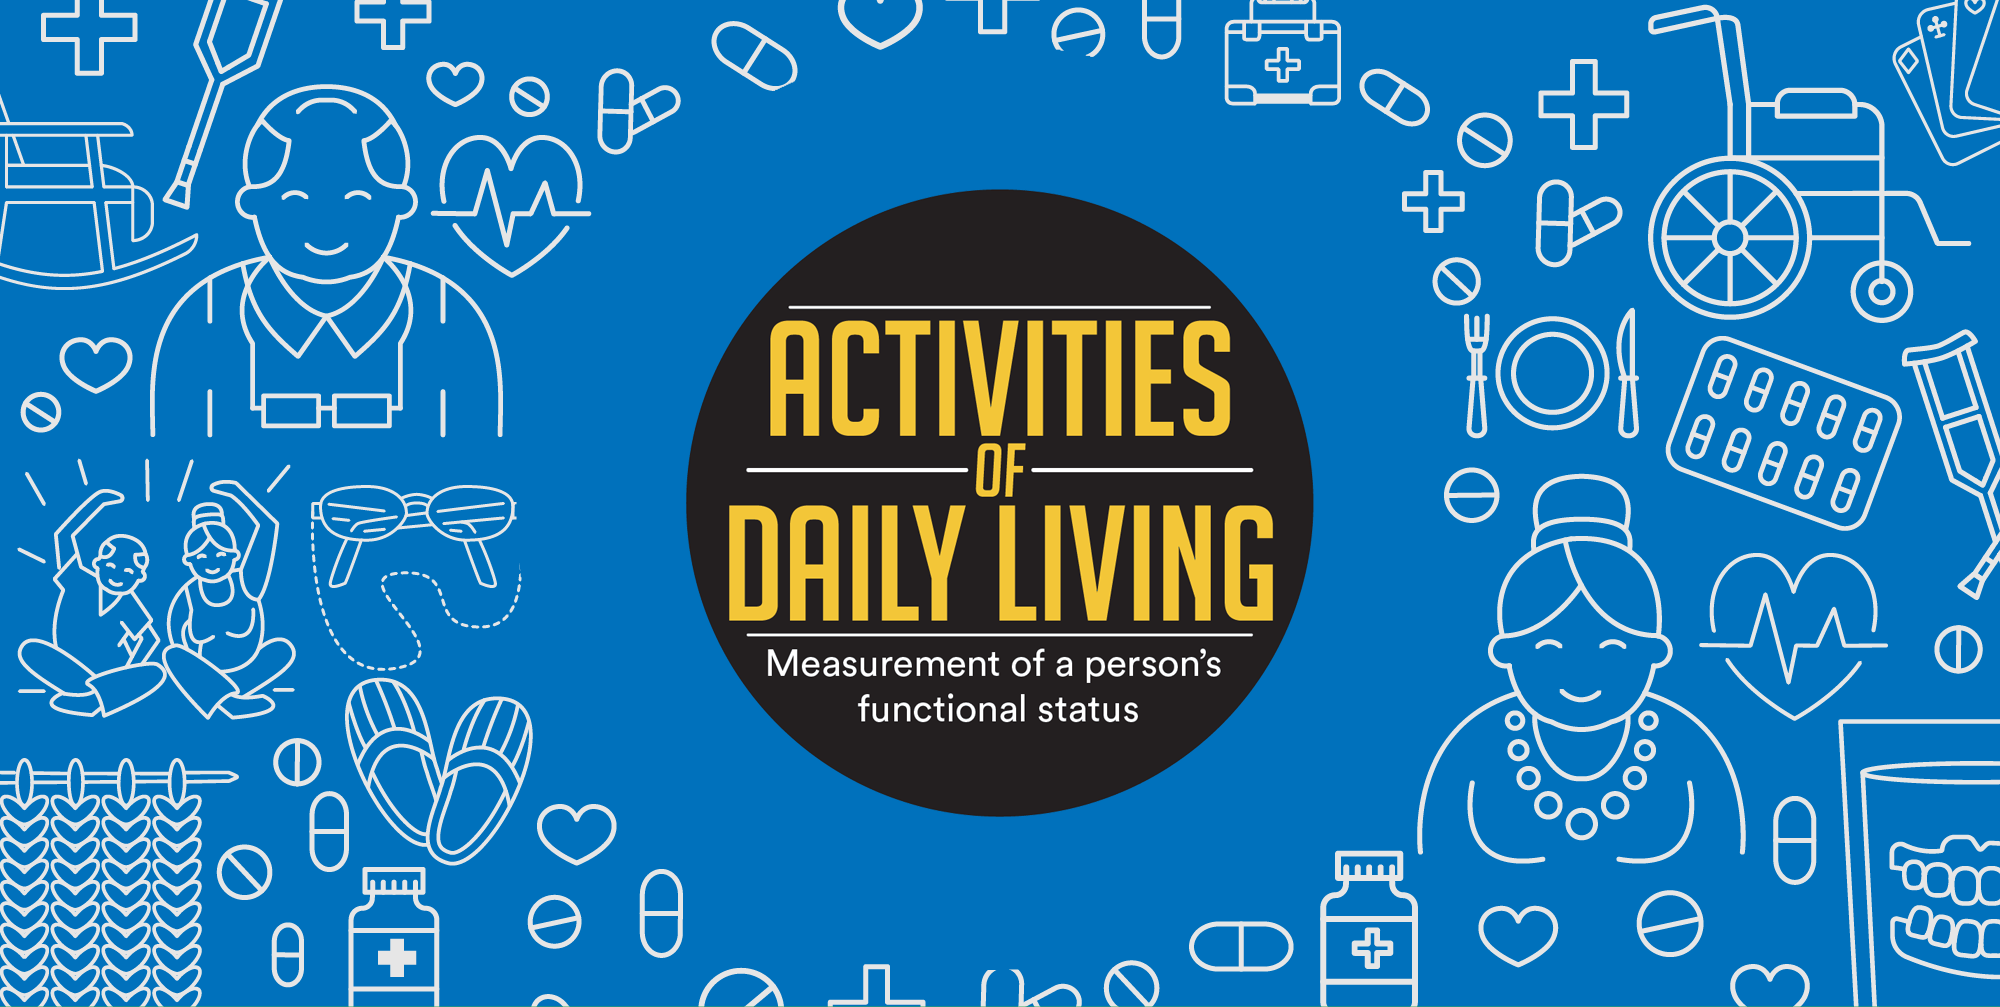 Adls And Iadls Complete Guide To Activities Of Daily